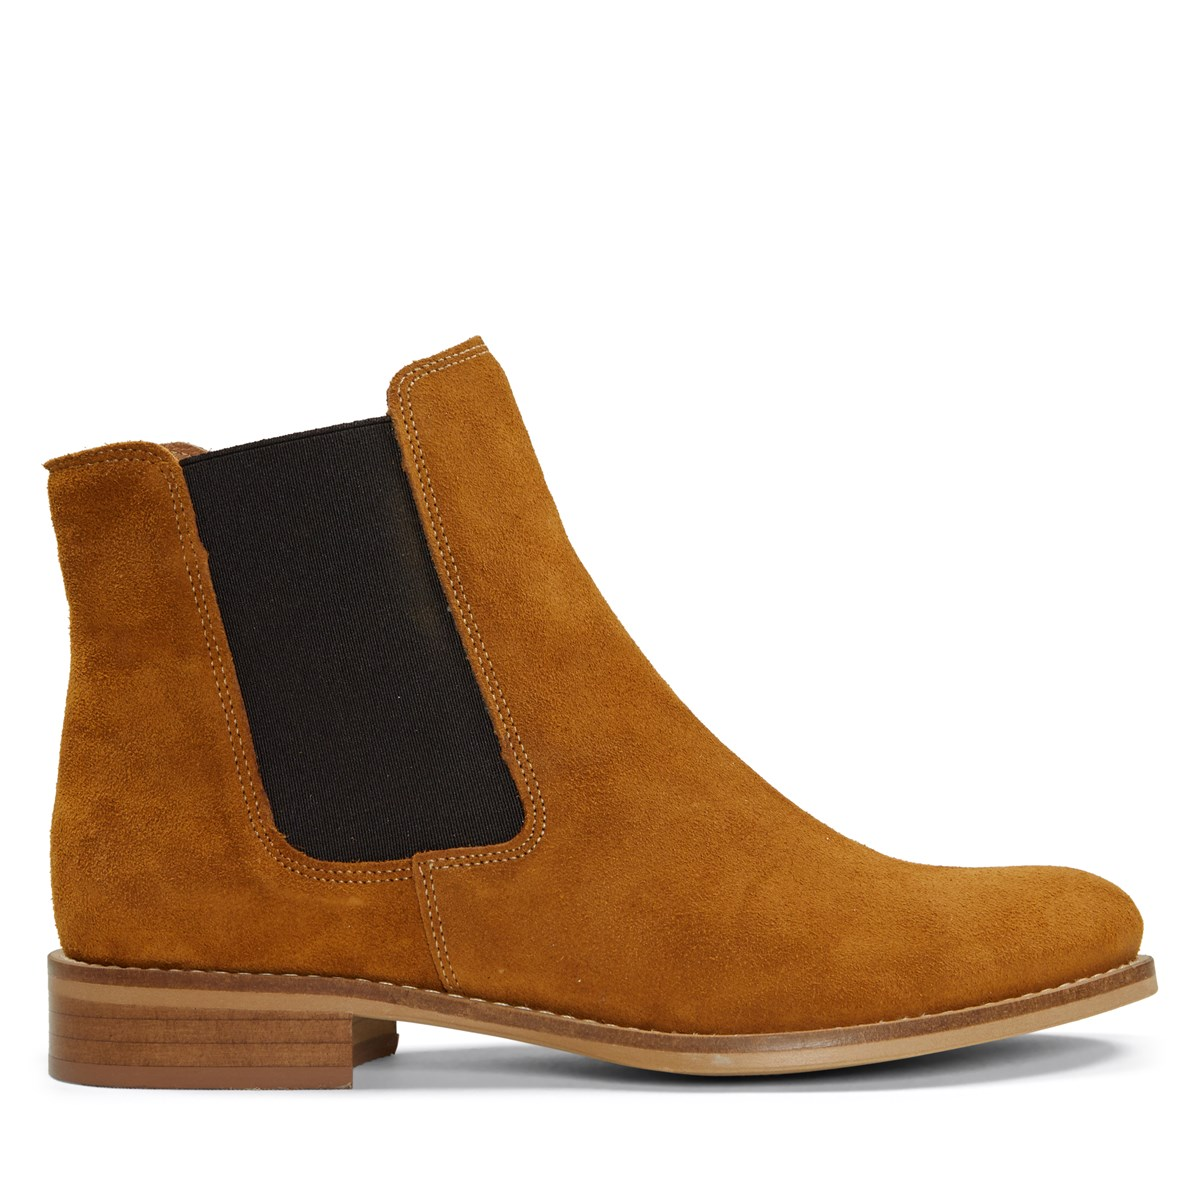 Women's Chloe Boot in Camel